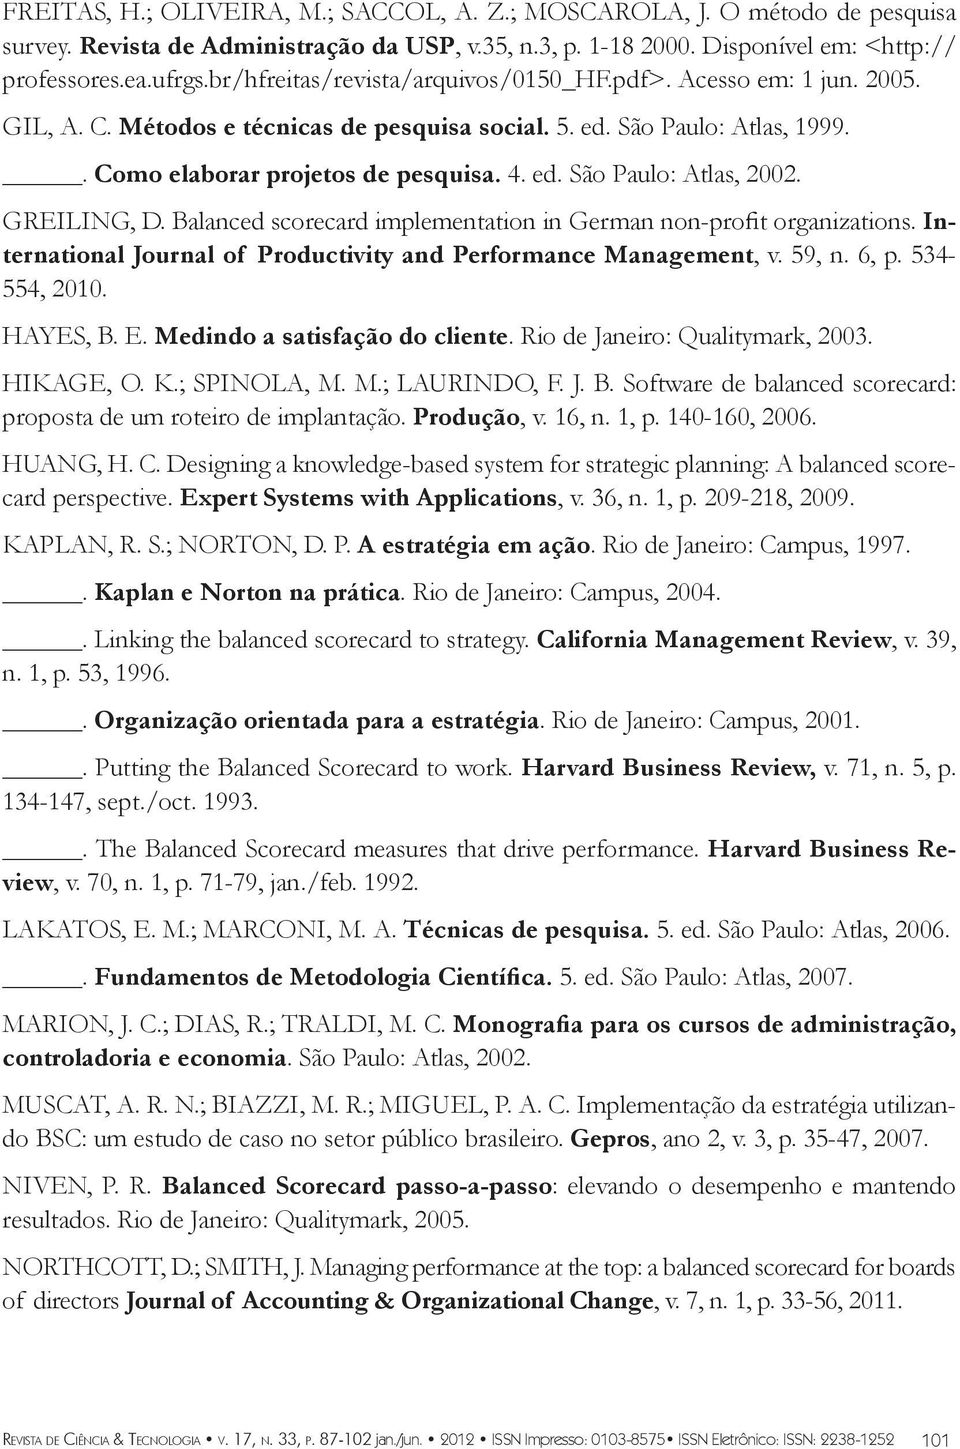 GREILING, D. Balanced scorecard implementation in German non-profit organizations. International Journal of Productivity and Performance Management, v. 59, n. 6, p. 534-554, 2010. HAYES, B. E.